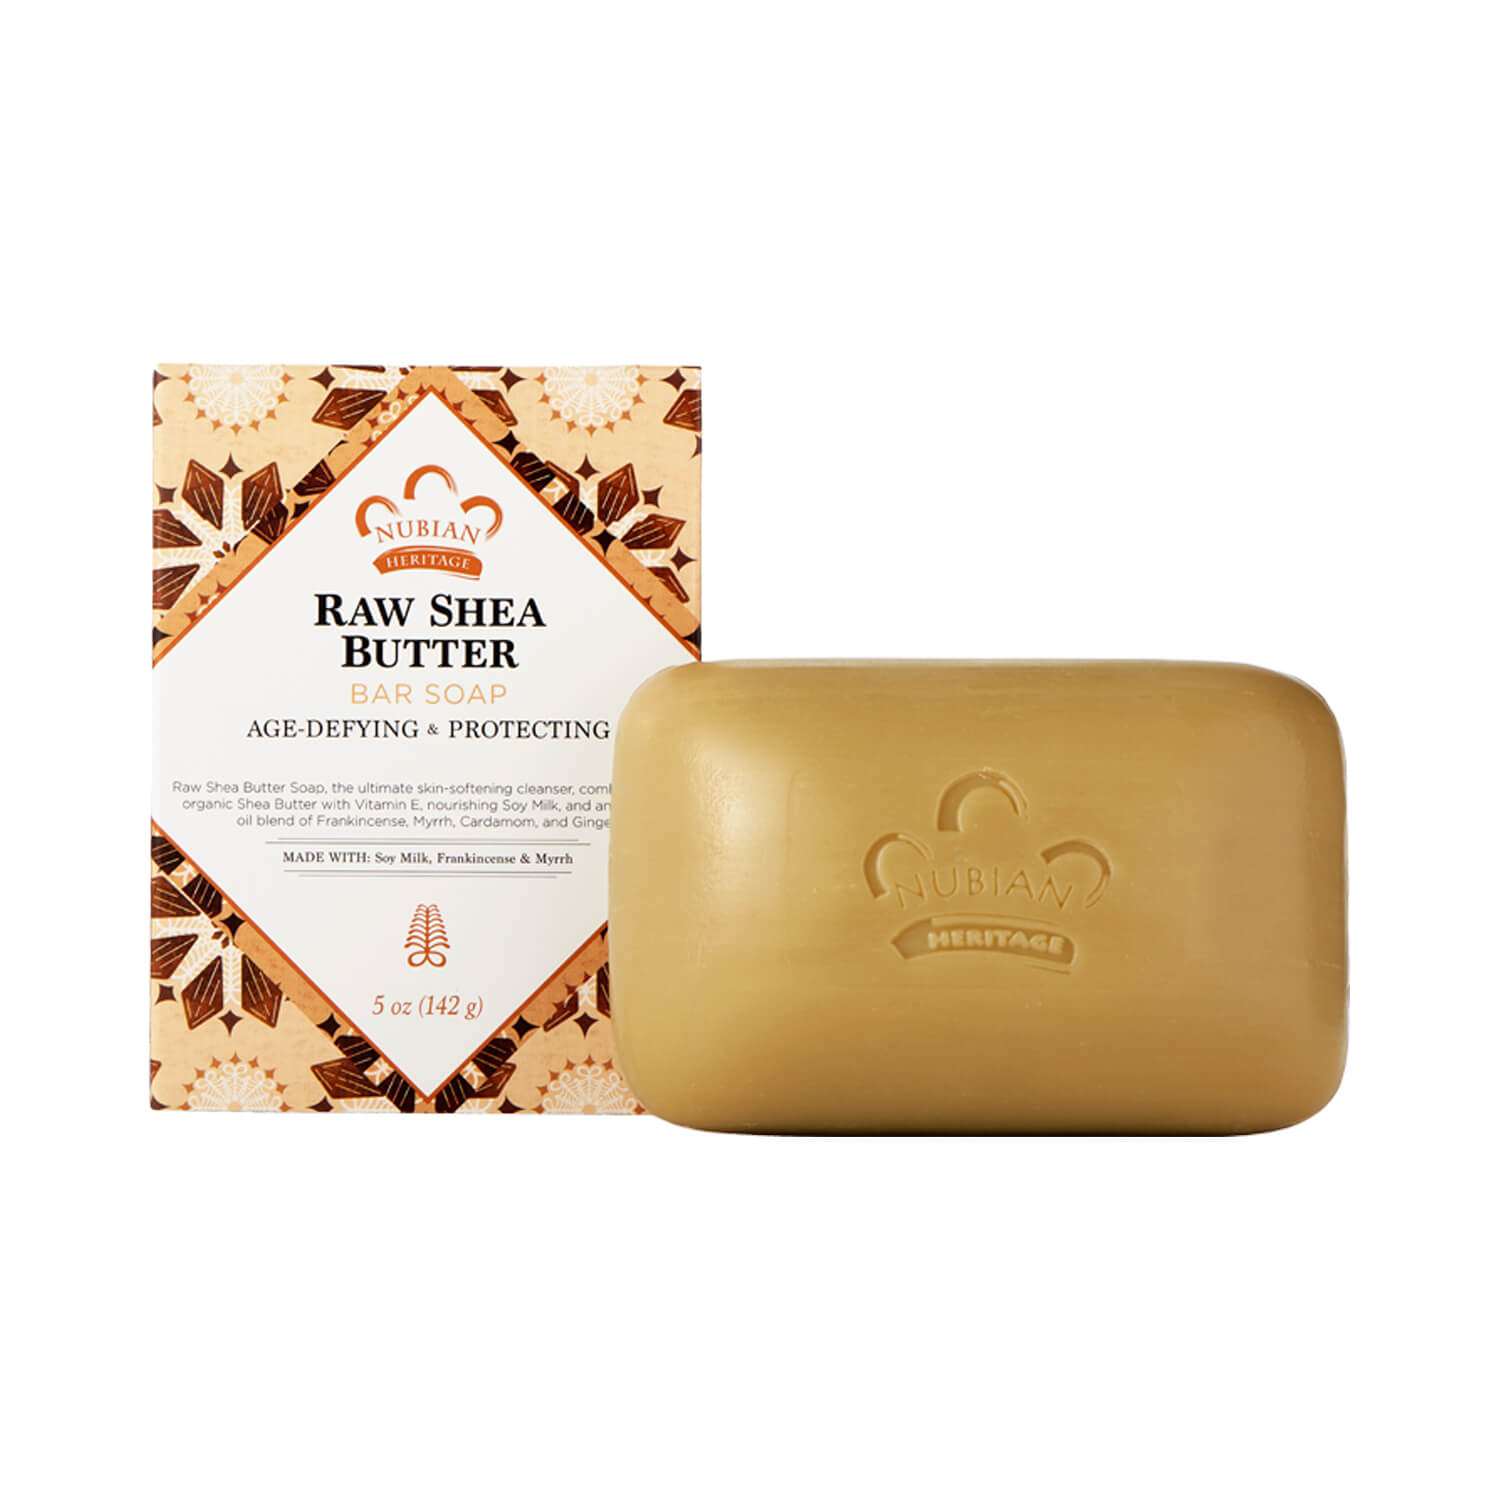 Nubian Heritage Raw Shea Butter Bar Soap 141g